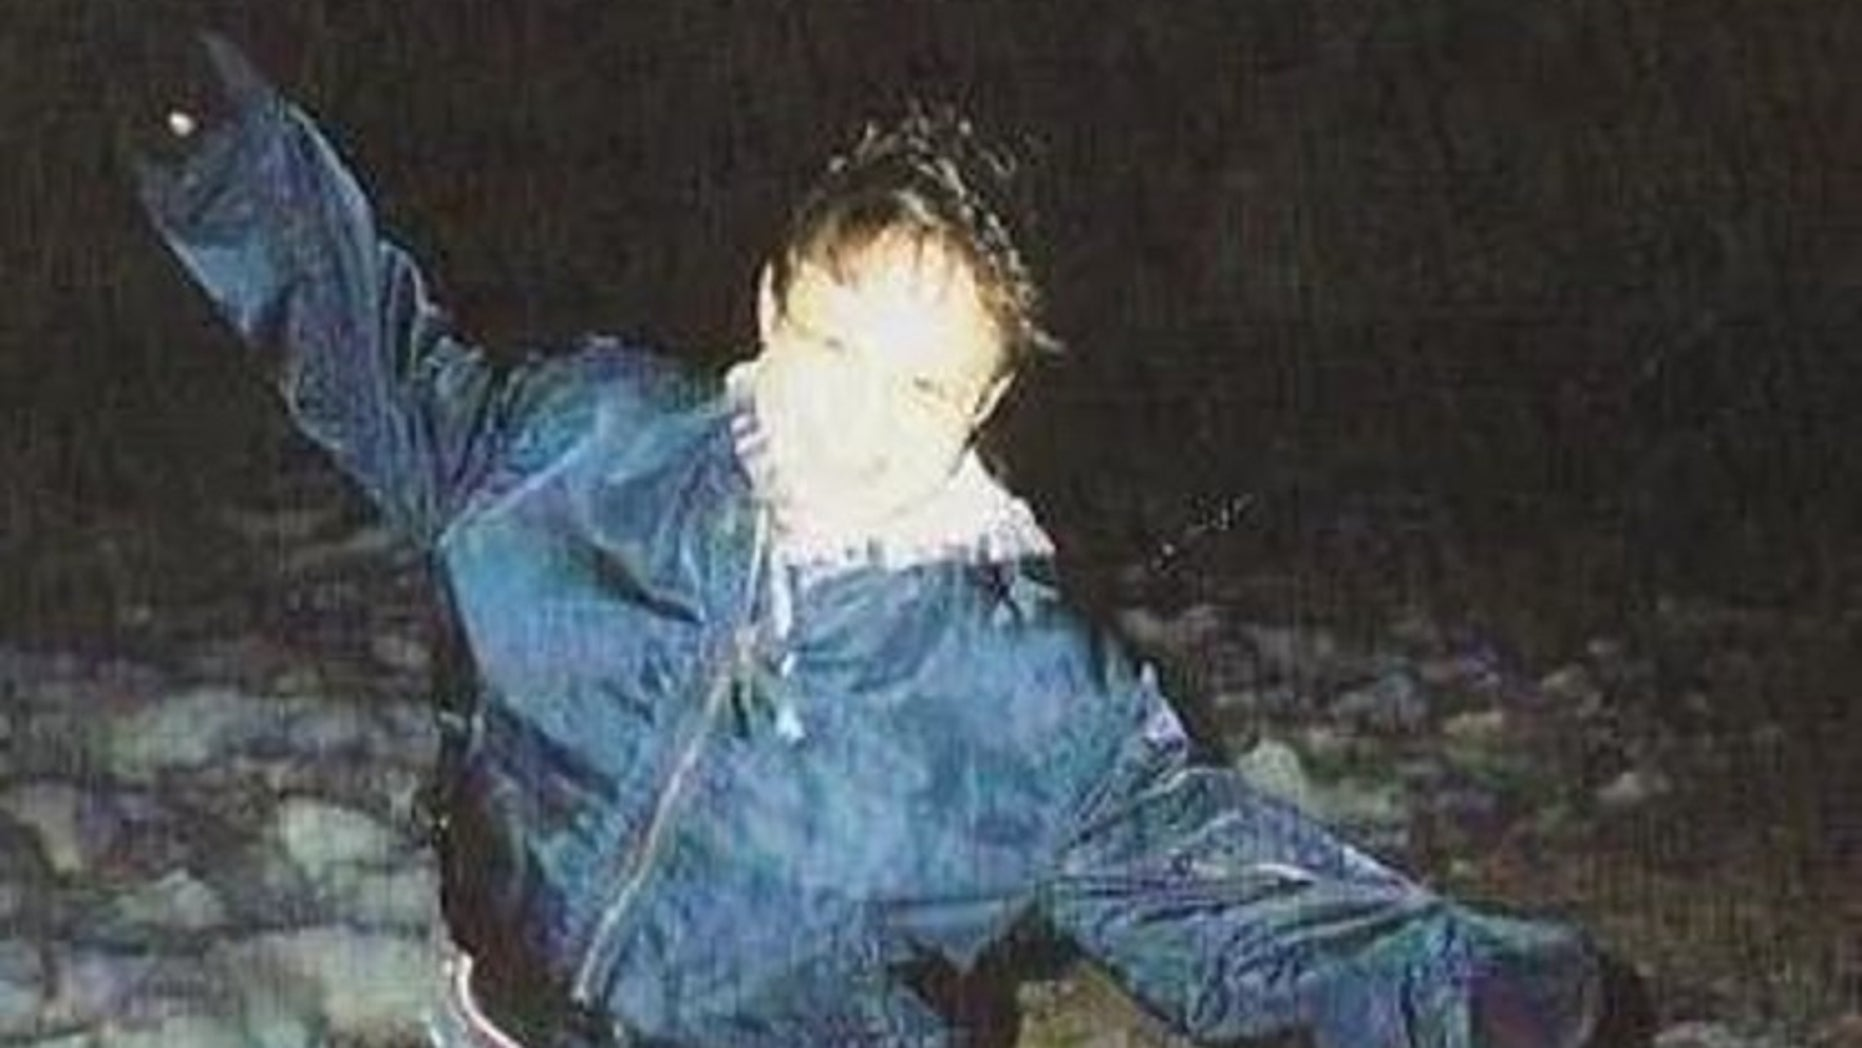 Sophie Sergie was found dead in a bathtub on the University of Alaska Fairbanks campus in 1993. (Alaska State Troopers)